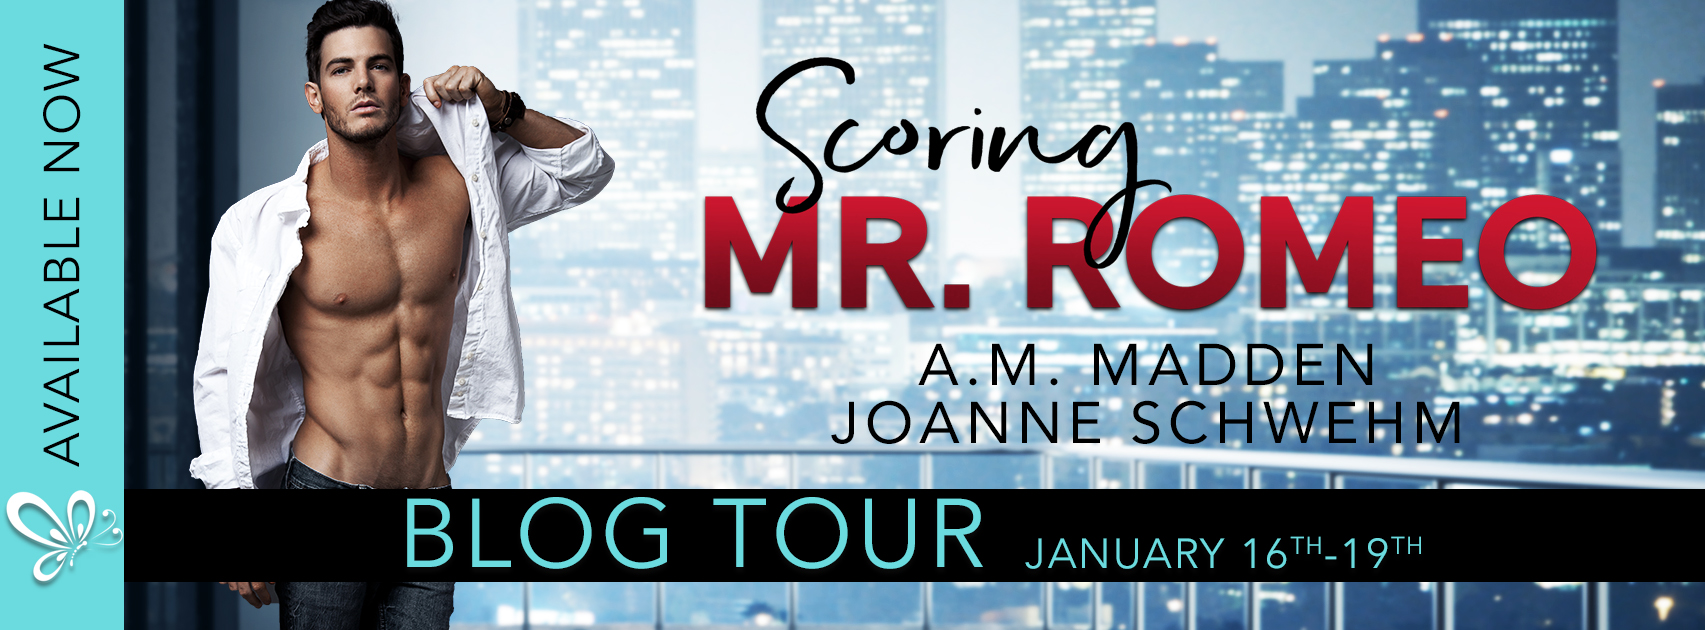 Scoring Mr. Romeo by A.M. Madden & Joanne Schwehm Blog Tour Review